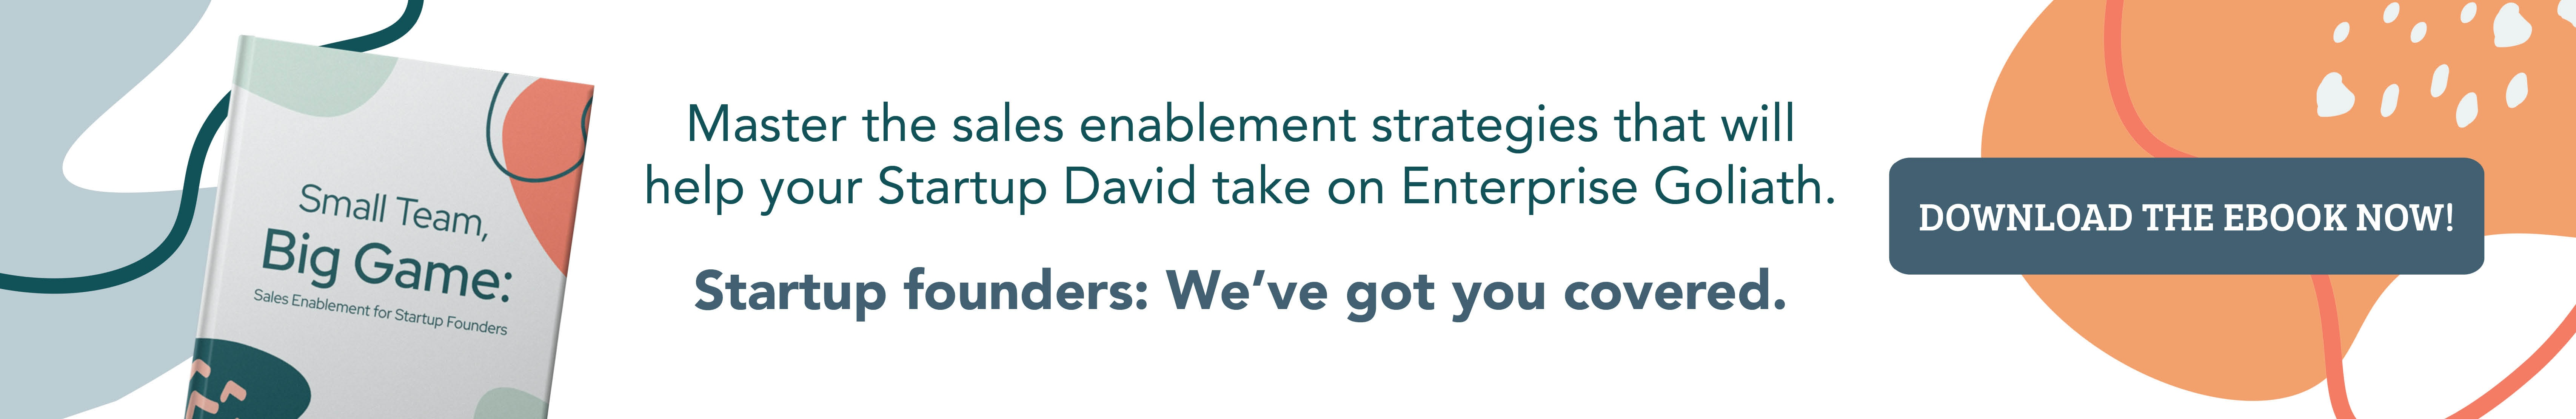 Small Teams Big Game Sales Enablement for Startup Founders